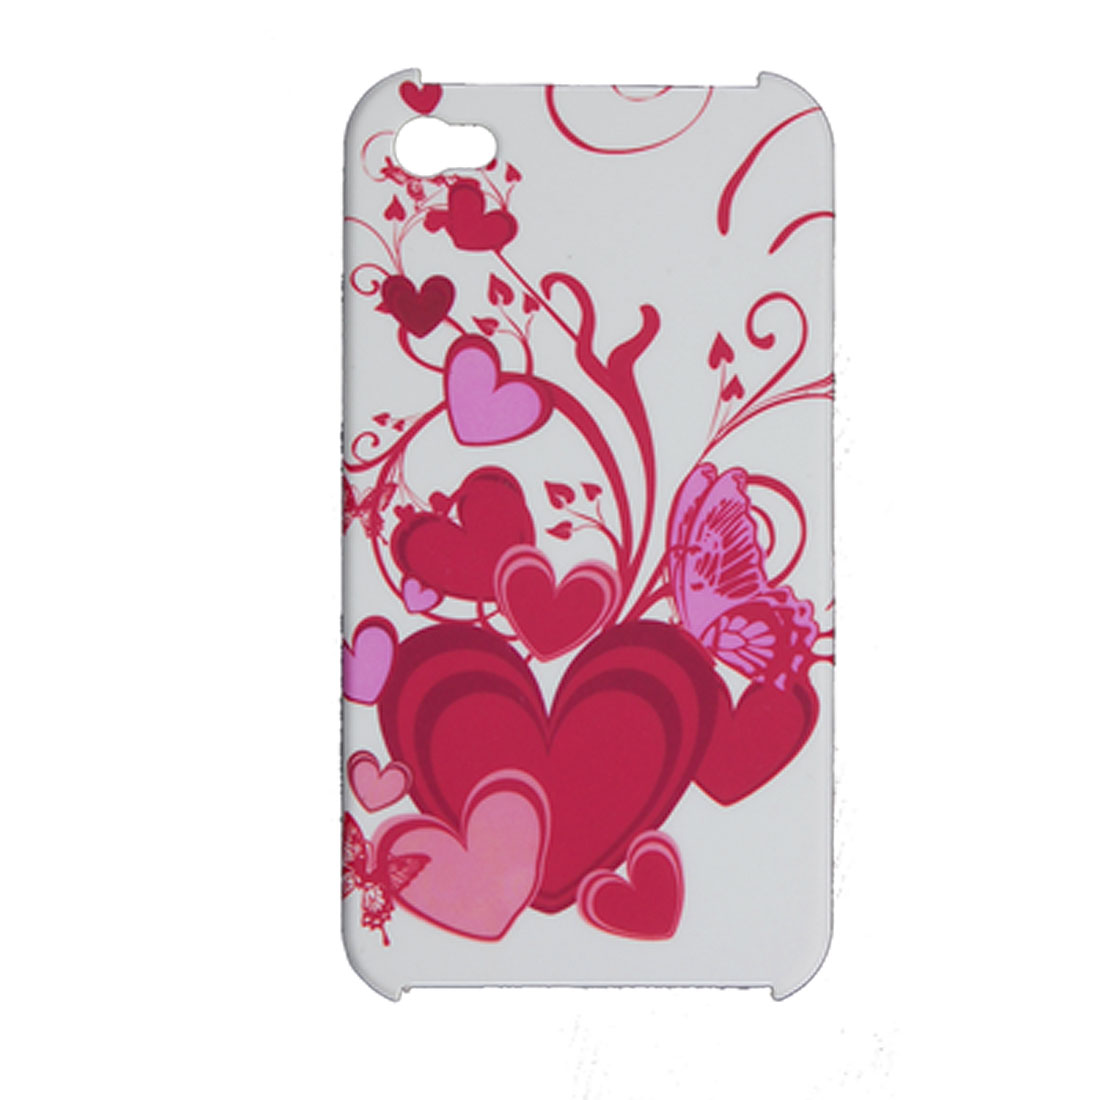 Heart Pattern Case + Screen Guard + Duet-free Stopper for iPhone 4 4G